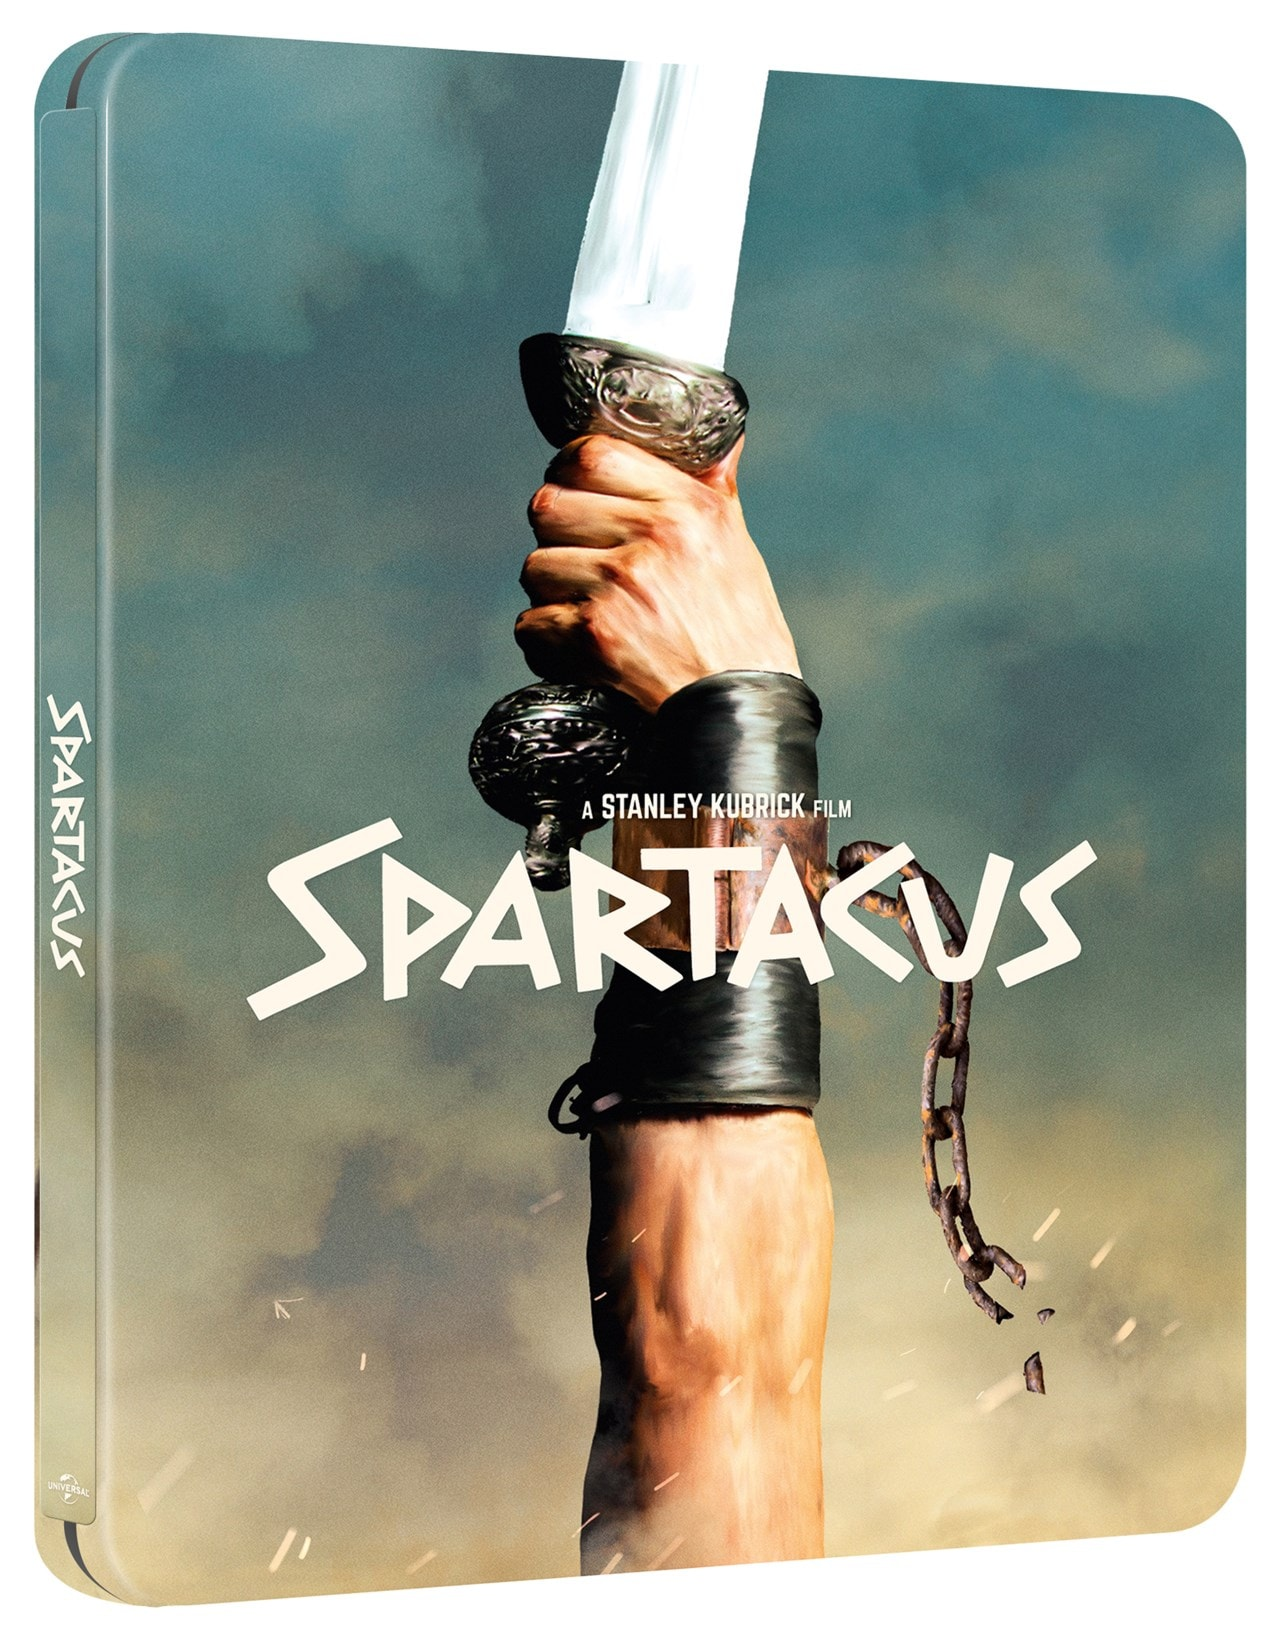 Spartacus 60th Anniversay Limited Edition 4K Ultra HD Steelbook - 1